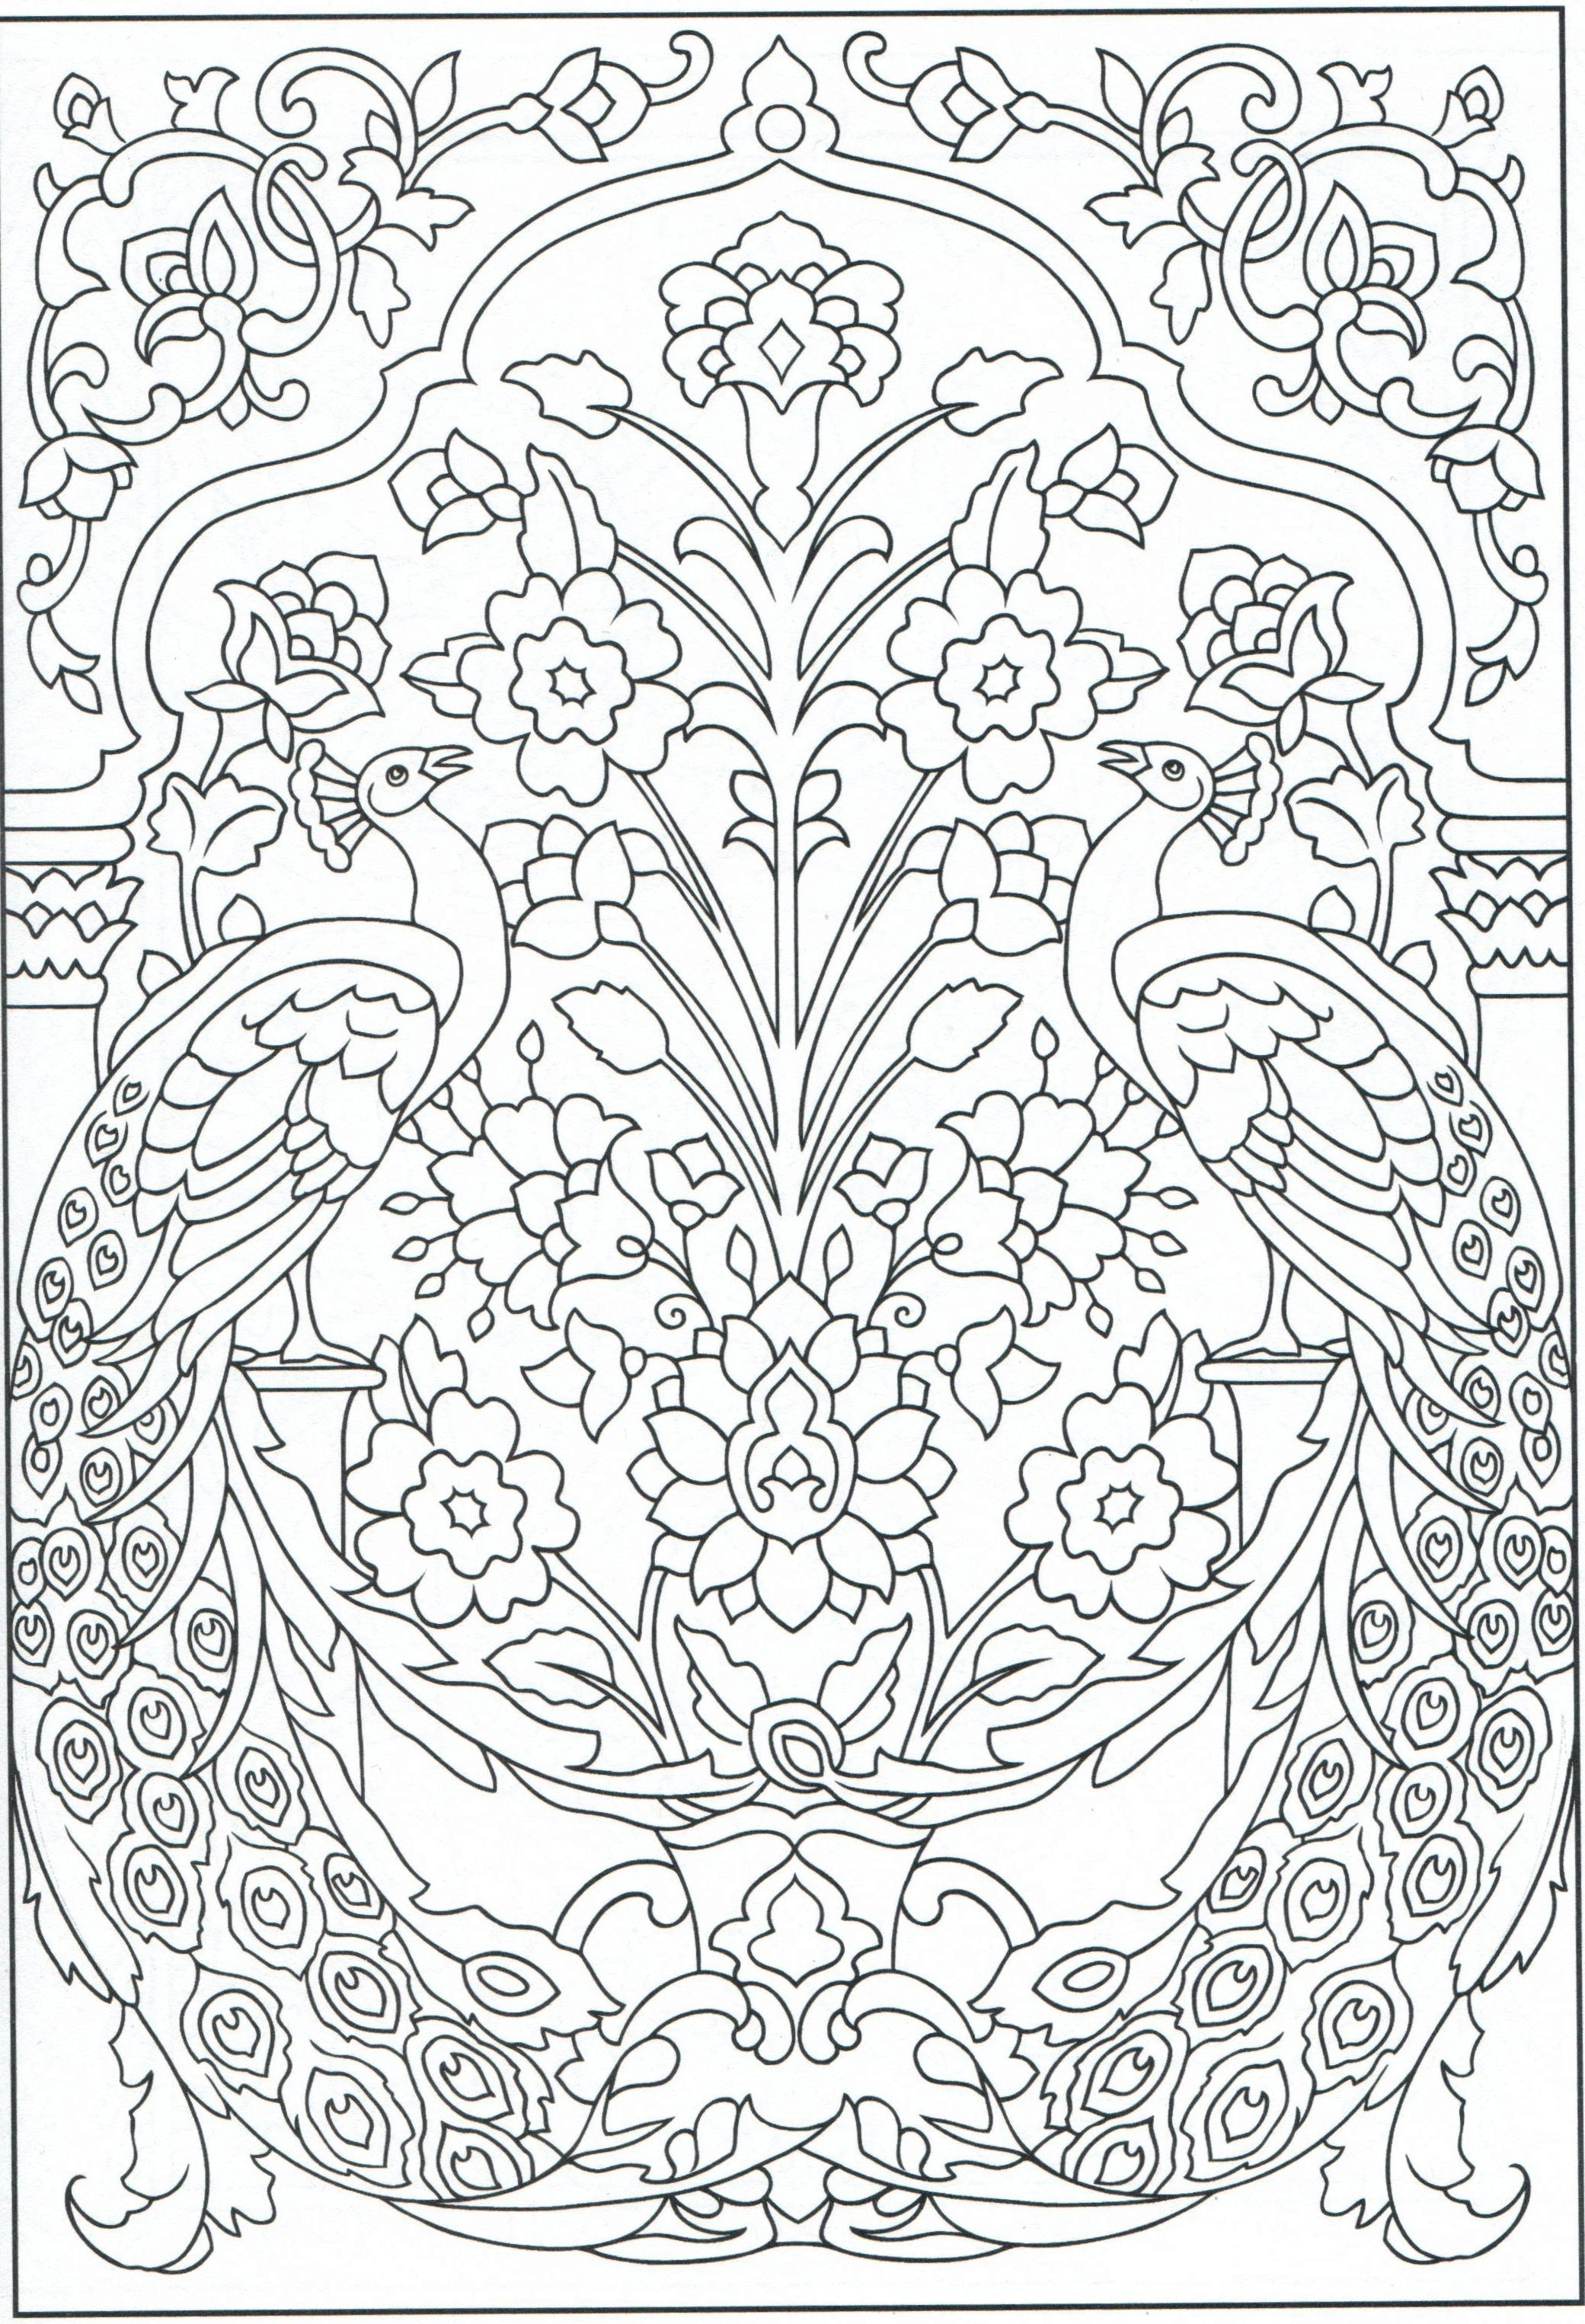 Peacock Coloring Page, For Adults 1/31   Color Pages